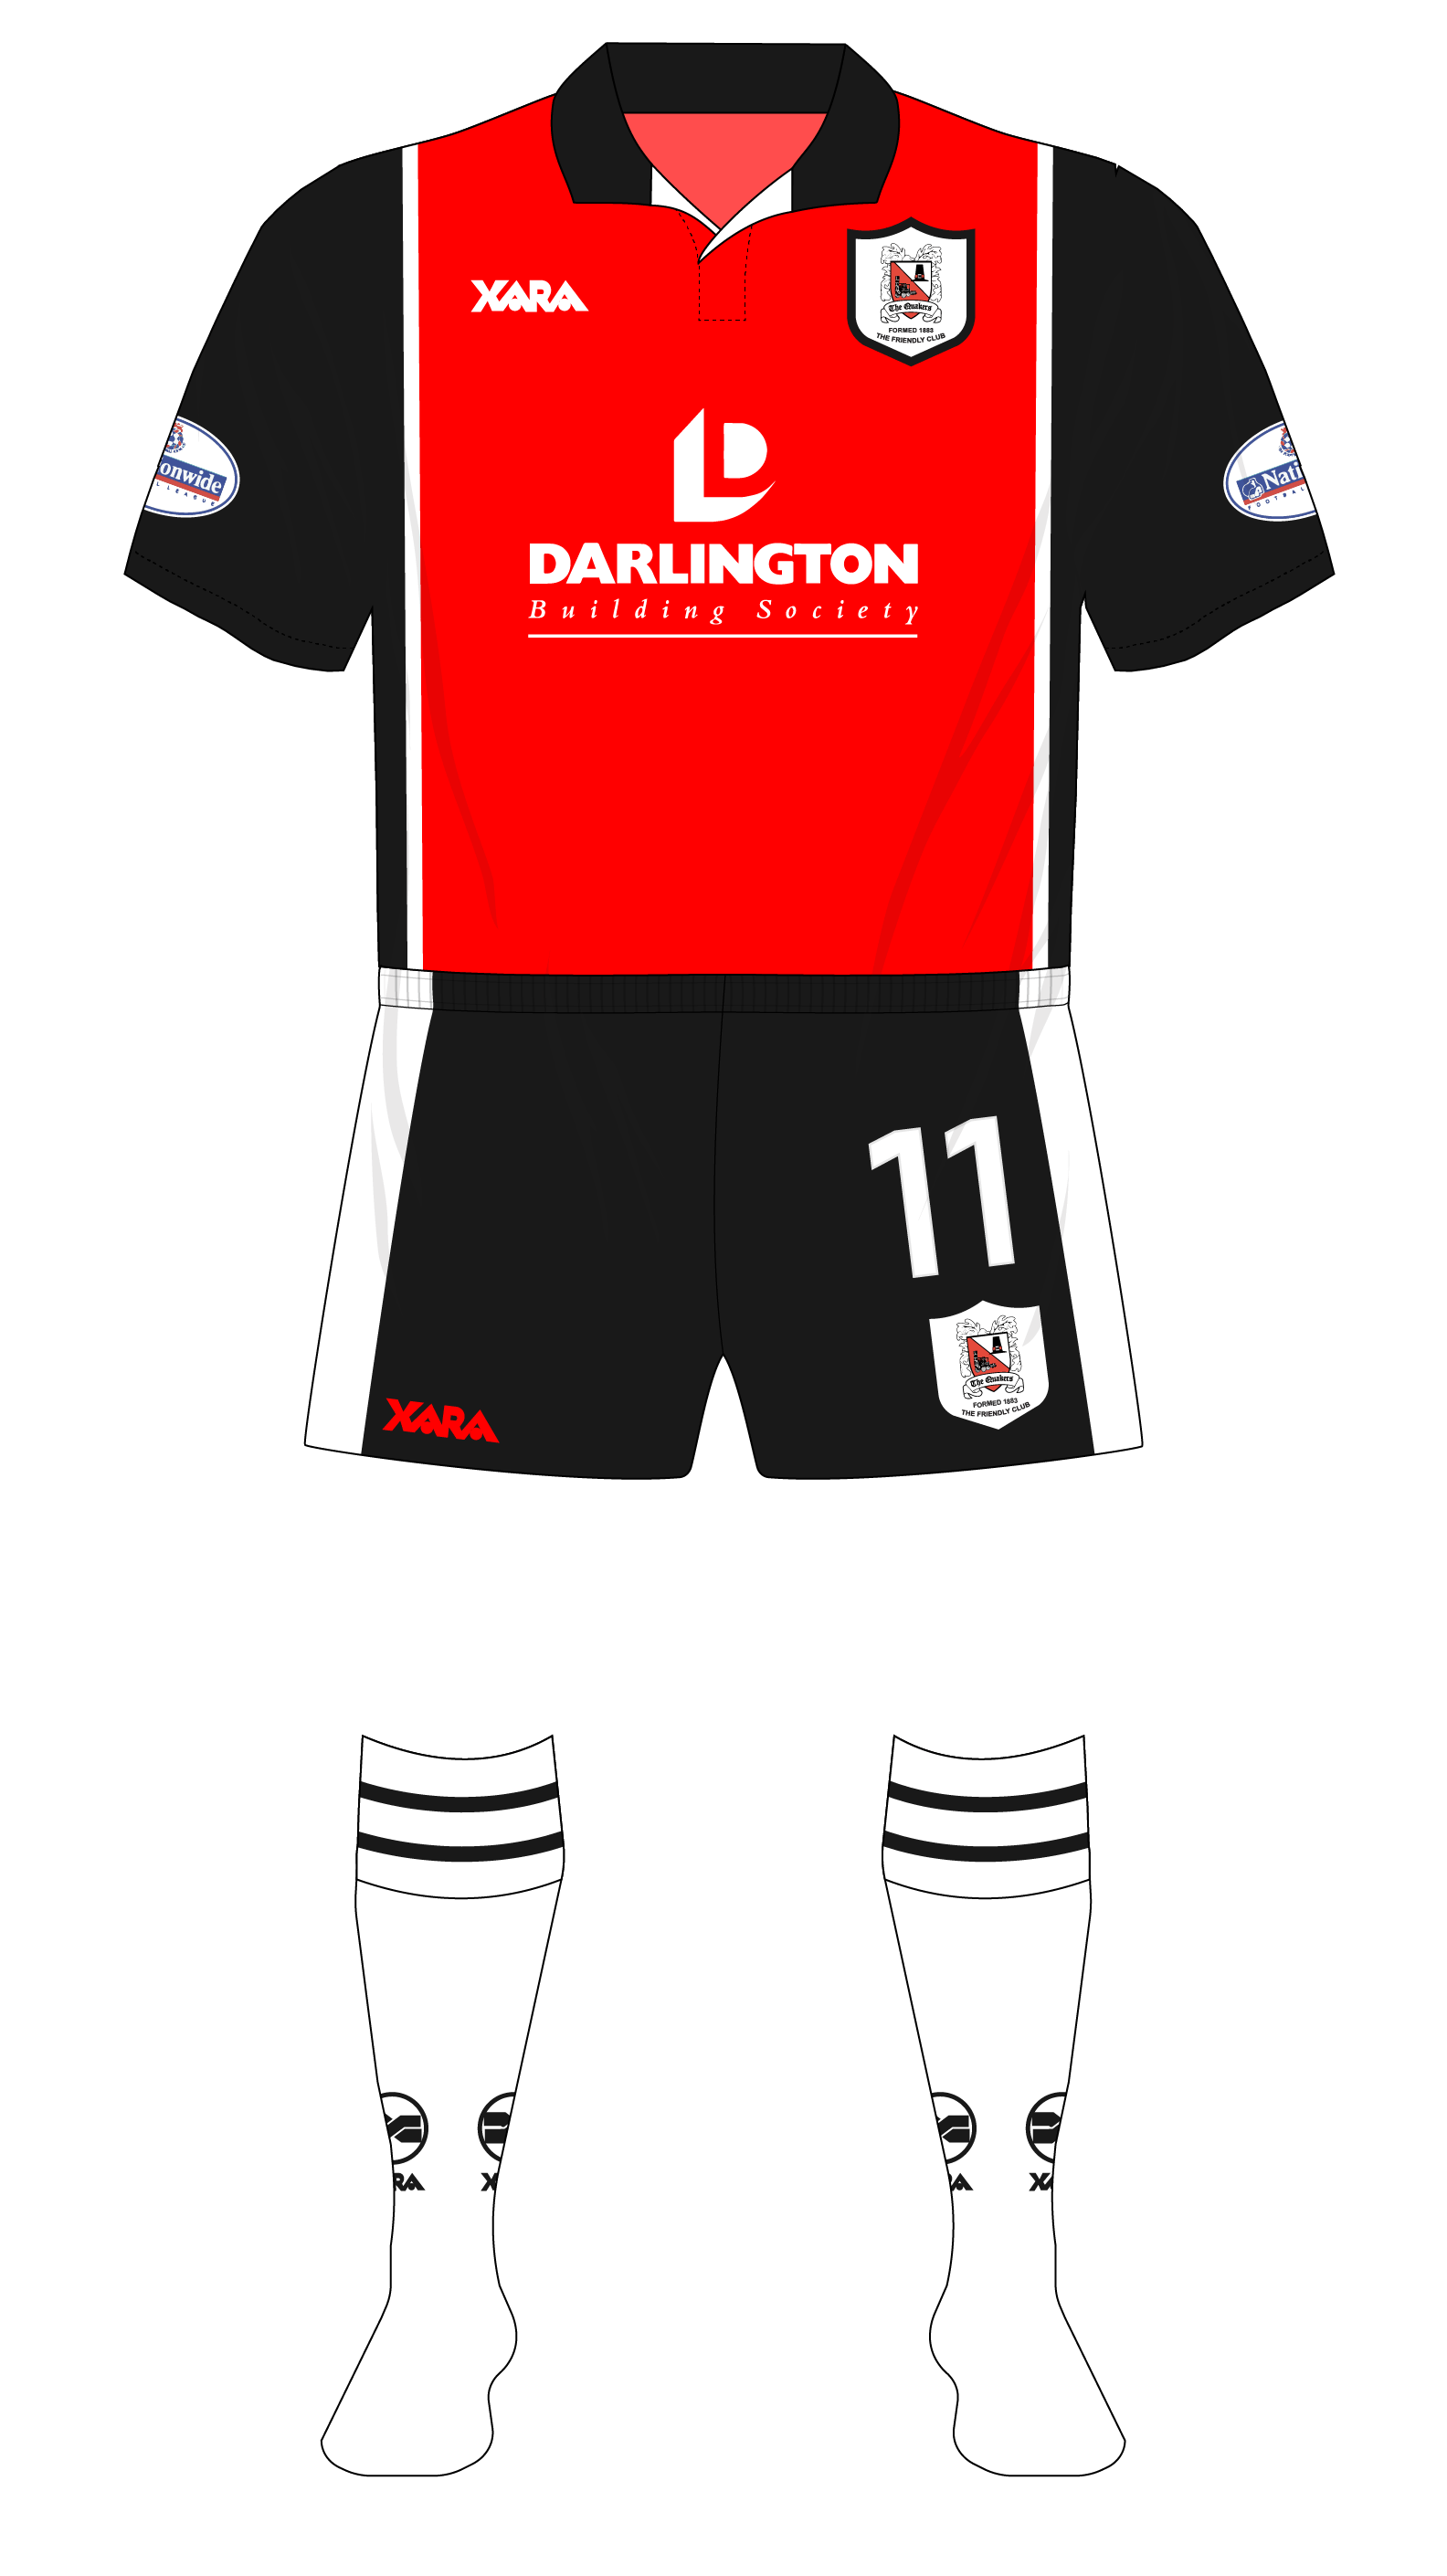 Darlington-2001-2001-away-shirt-home-shorts-socks-Hull-01